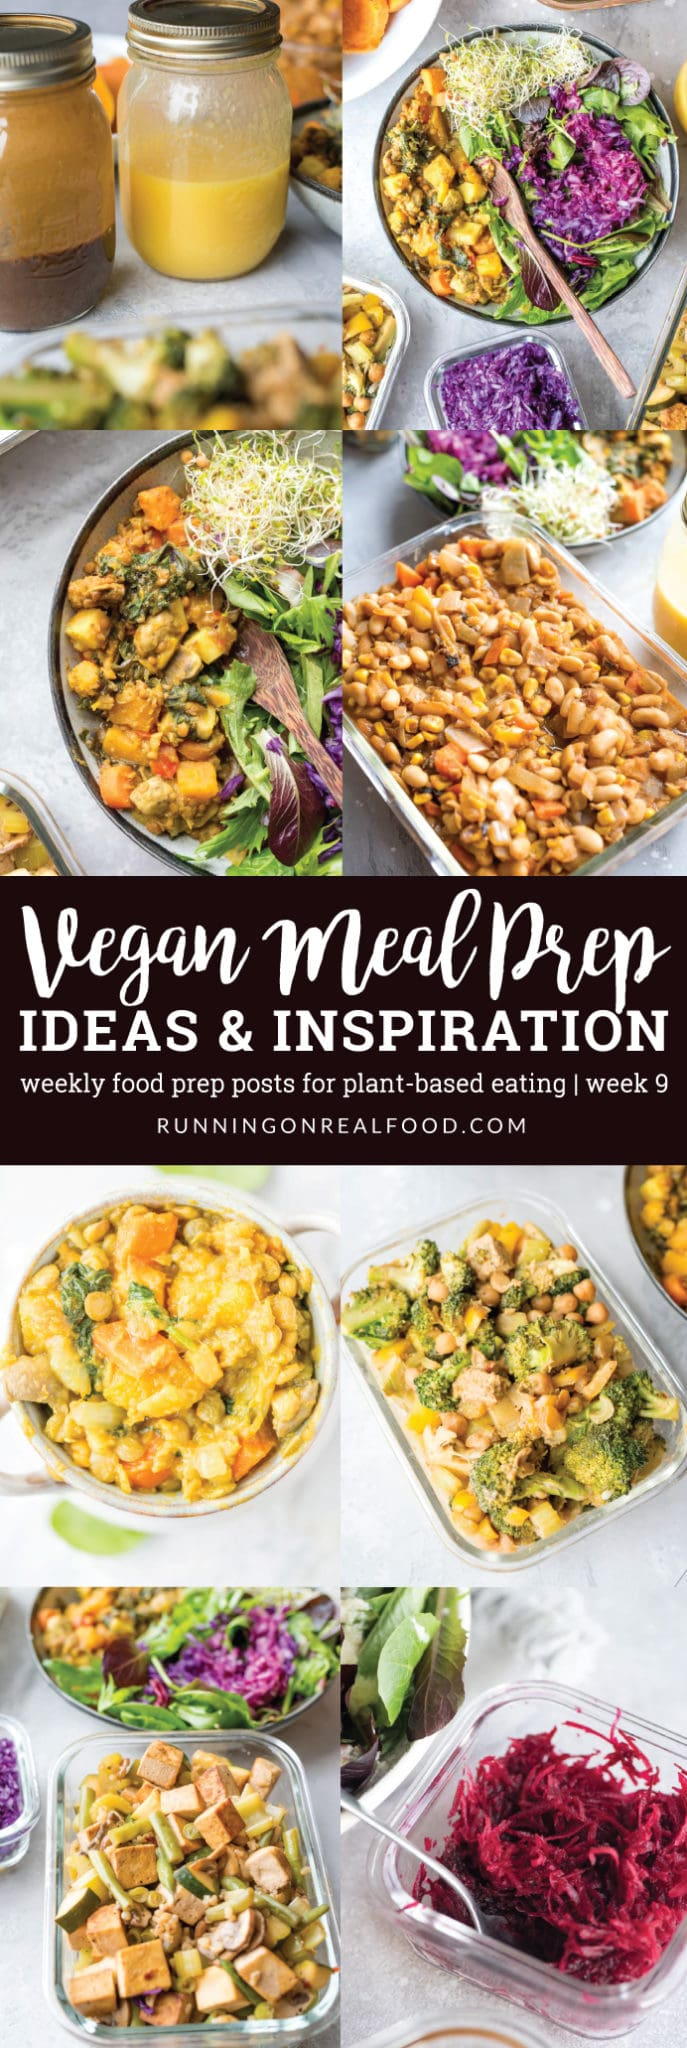 Healthy, vegan meal prep ideas including white bean chili, butternut squash stew, black pepper tofu and broccoli with tempeh.